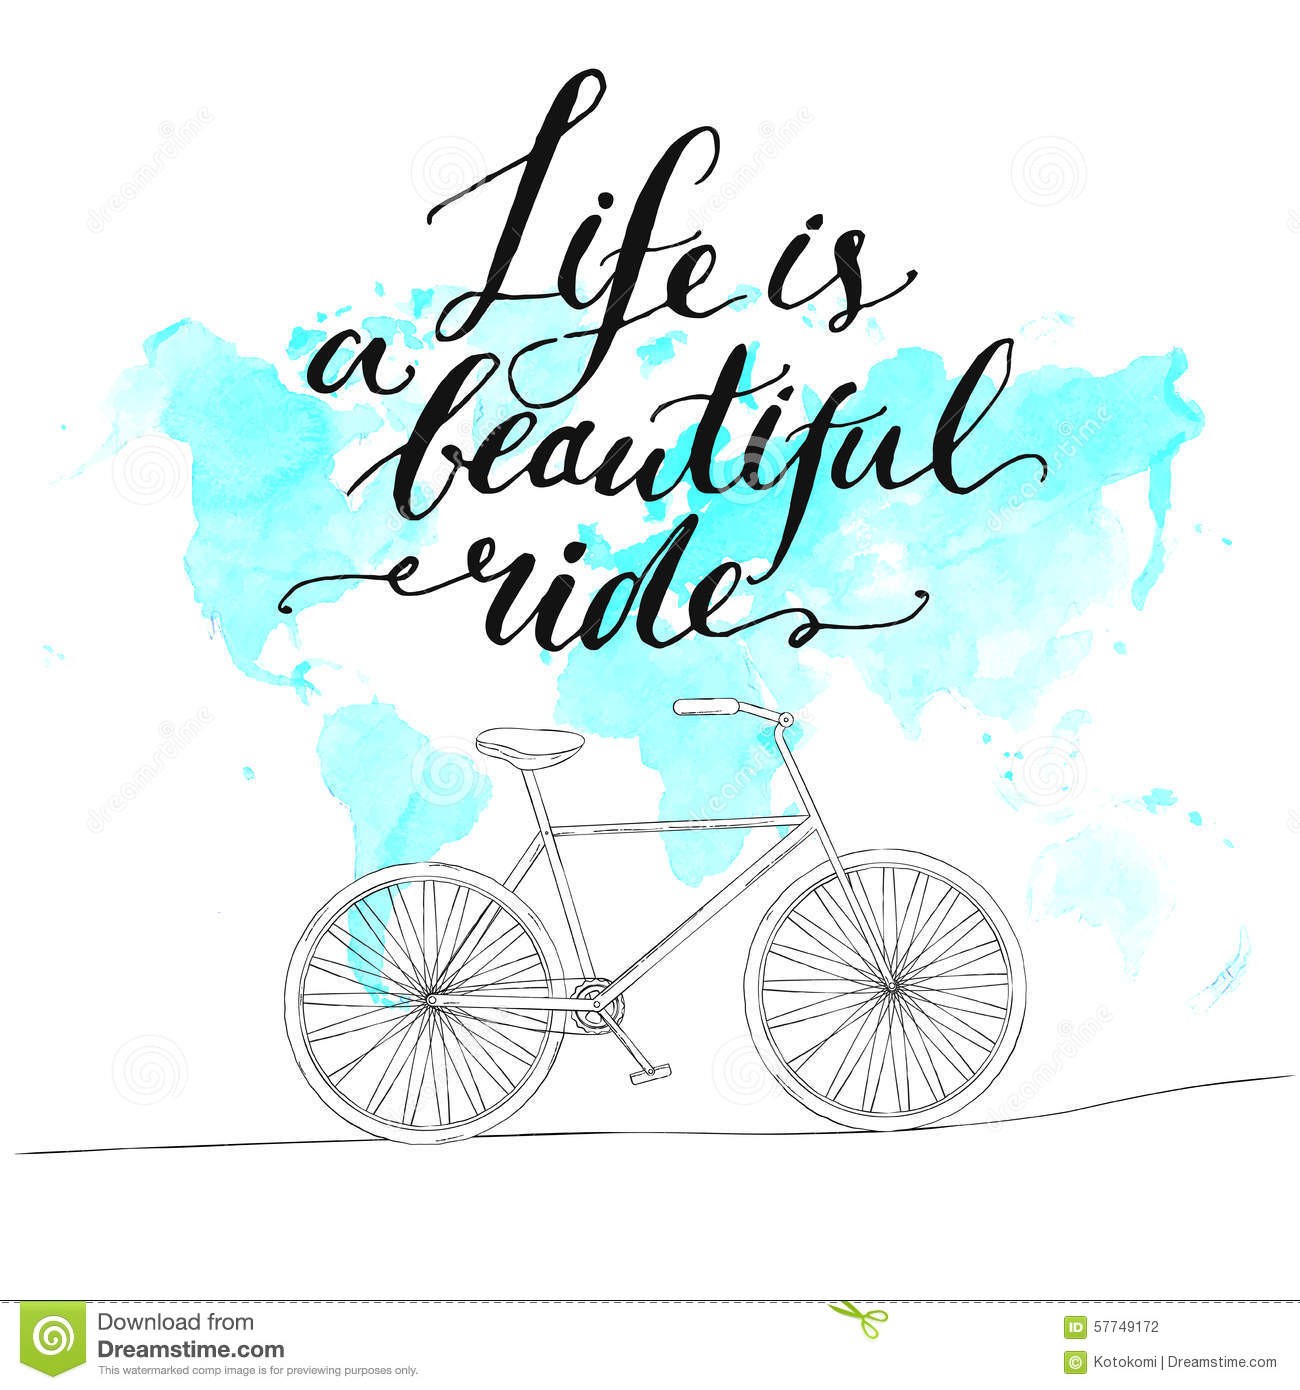 Albert Einstein Quotes Imagination Is More Important Than Knowledge Wallpaper Inspirational Quote Life Is A Beautiful Ride Stock